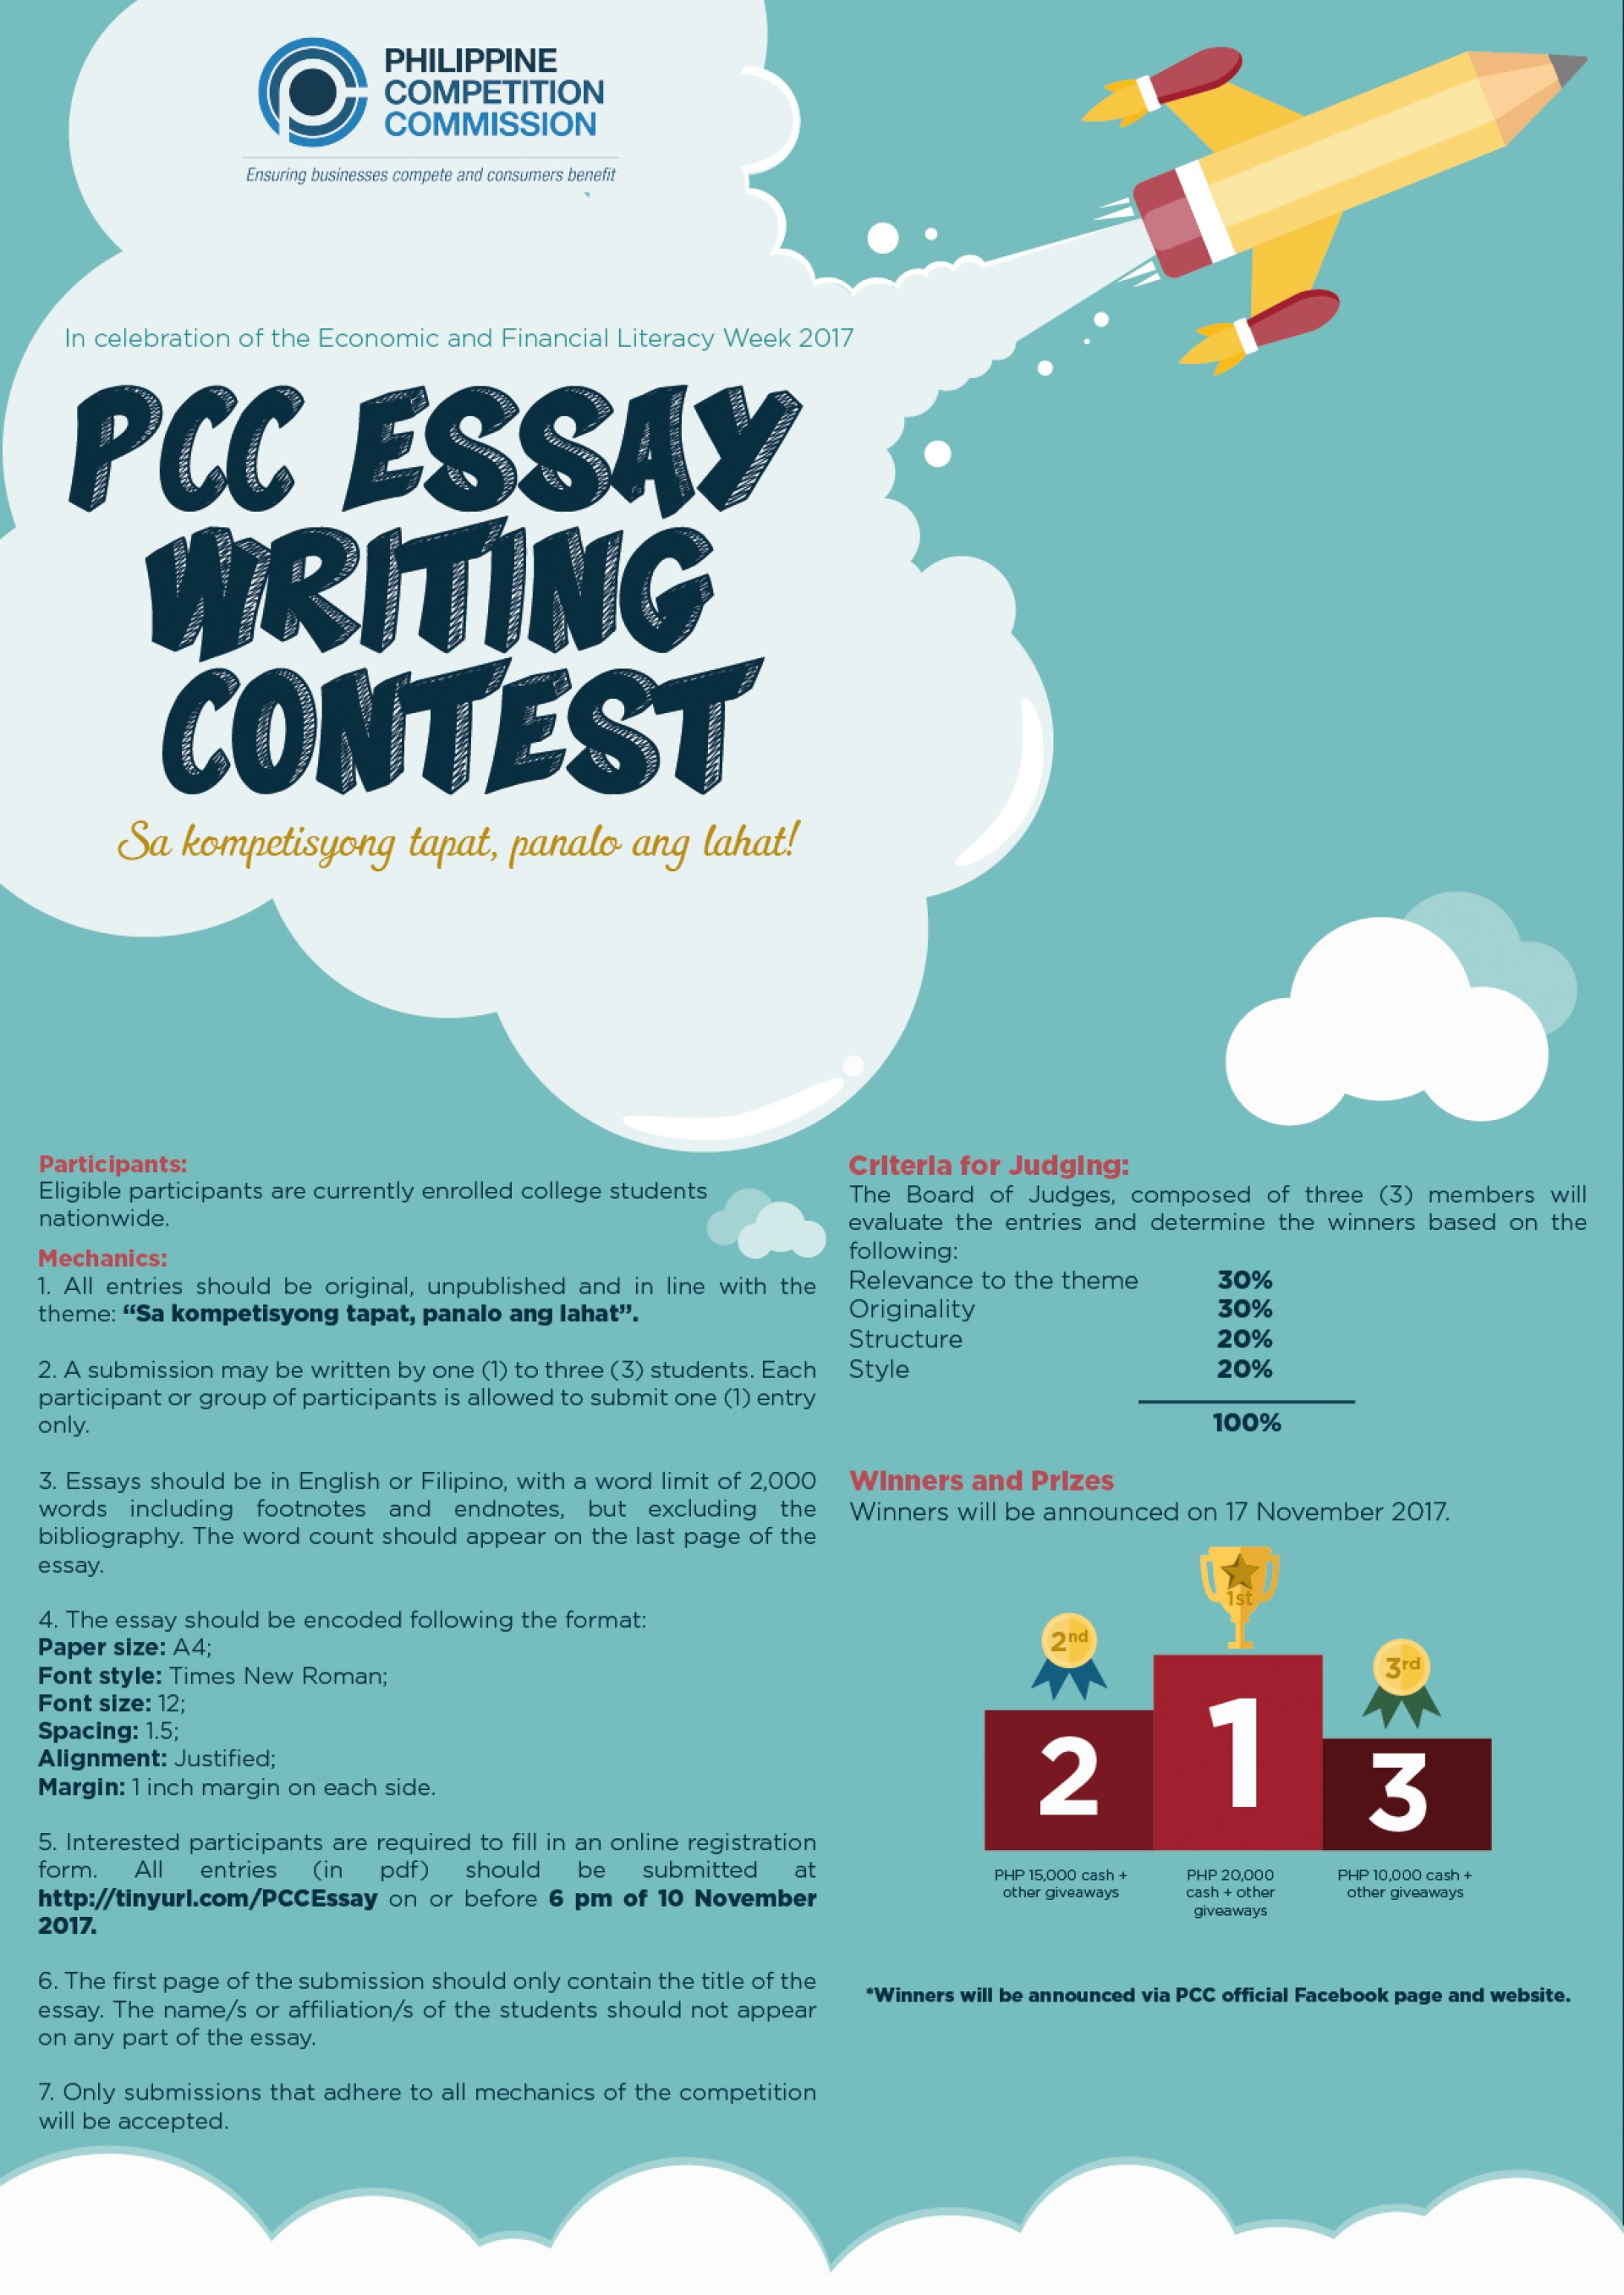 004 Essay Example Writing Contest Poster Final Incredible Competition For College Students By Essayhub Sample Mechanics 1920